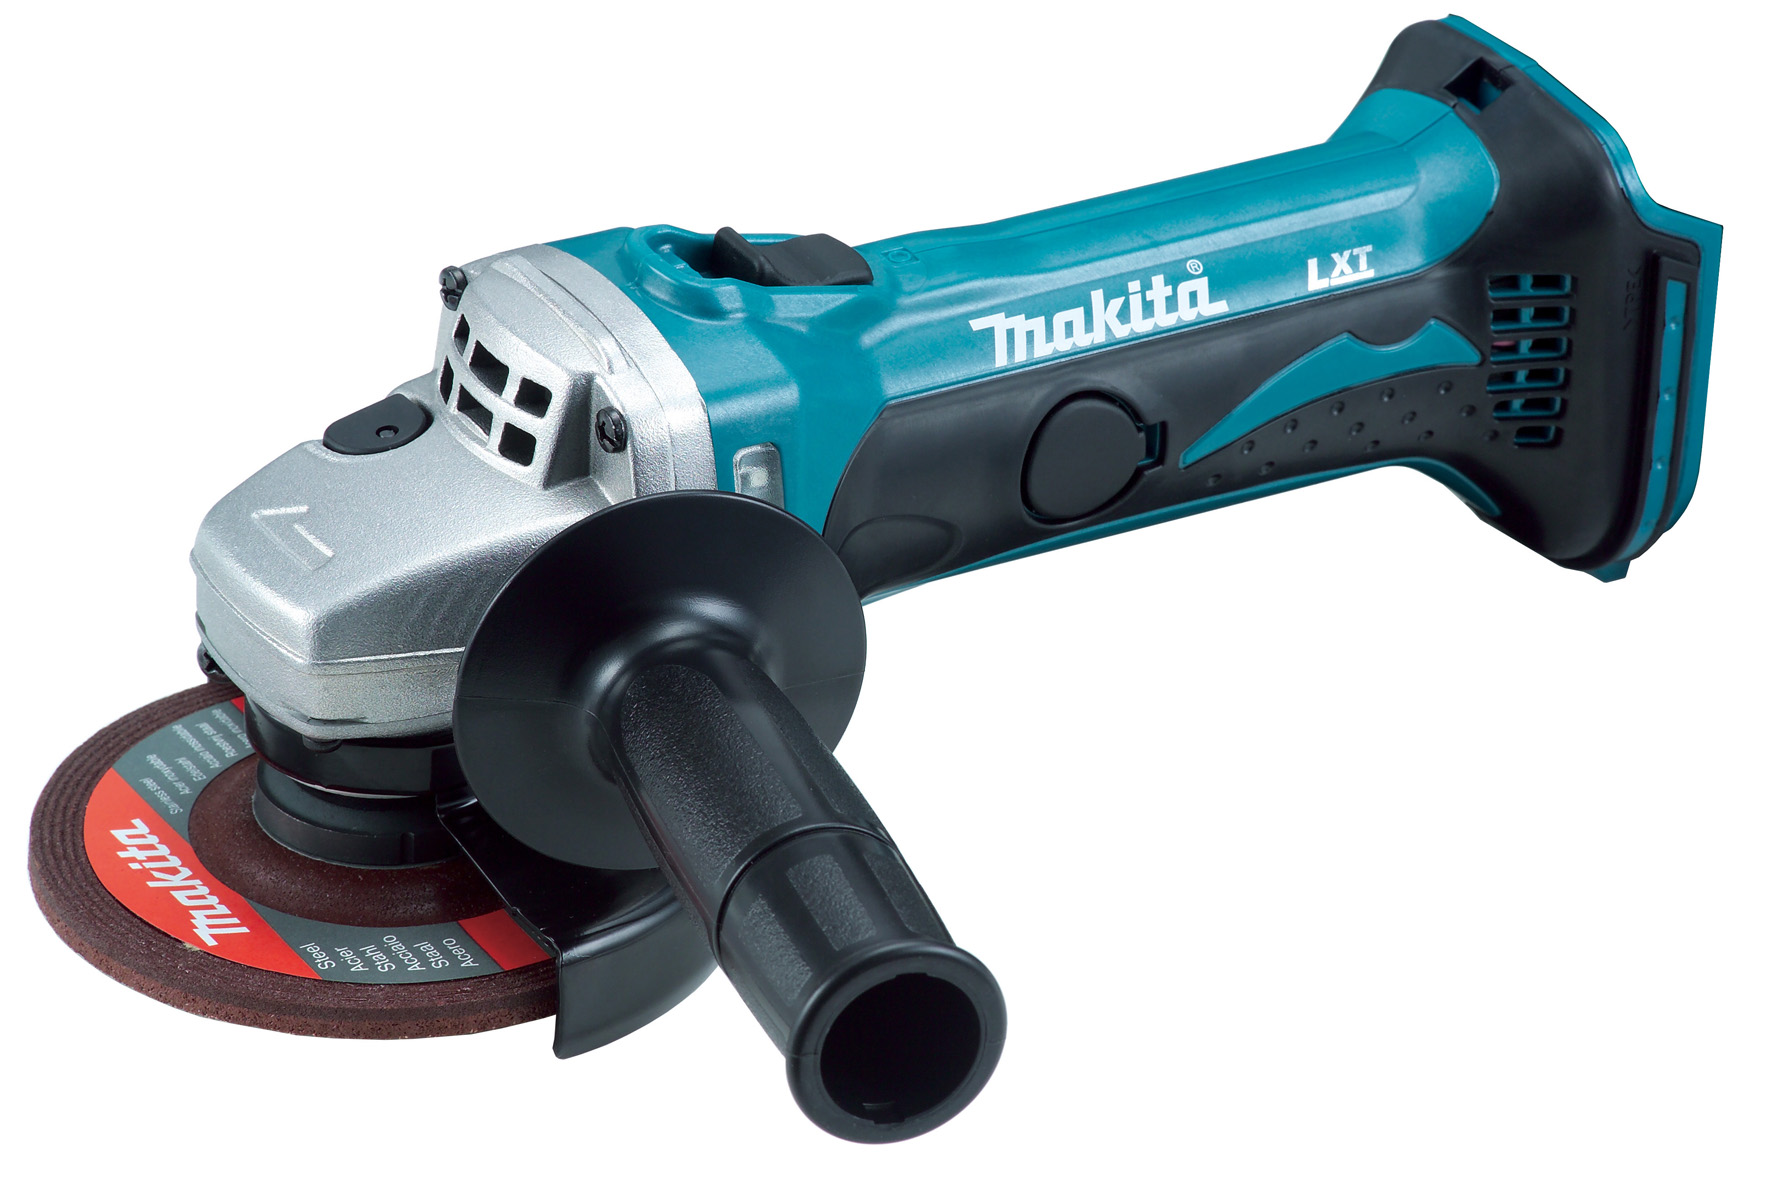 Makita Power Tools South Africa 18v Cordless Angle